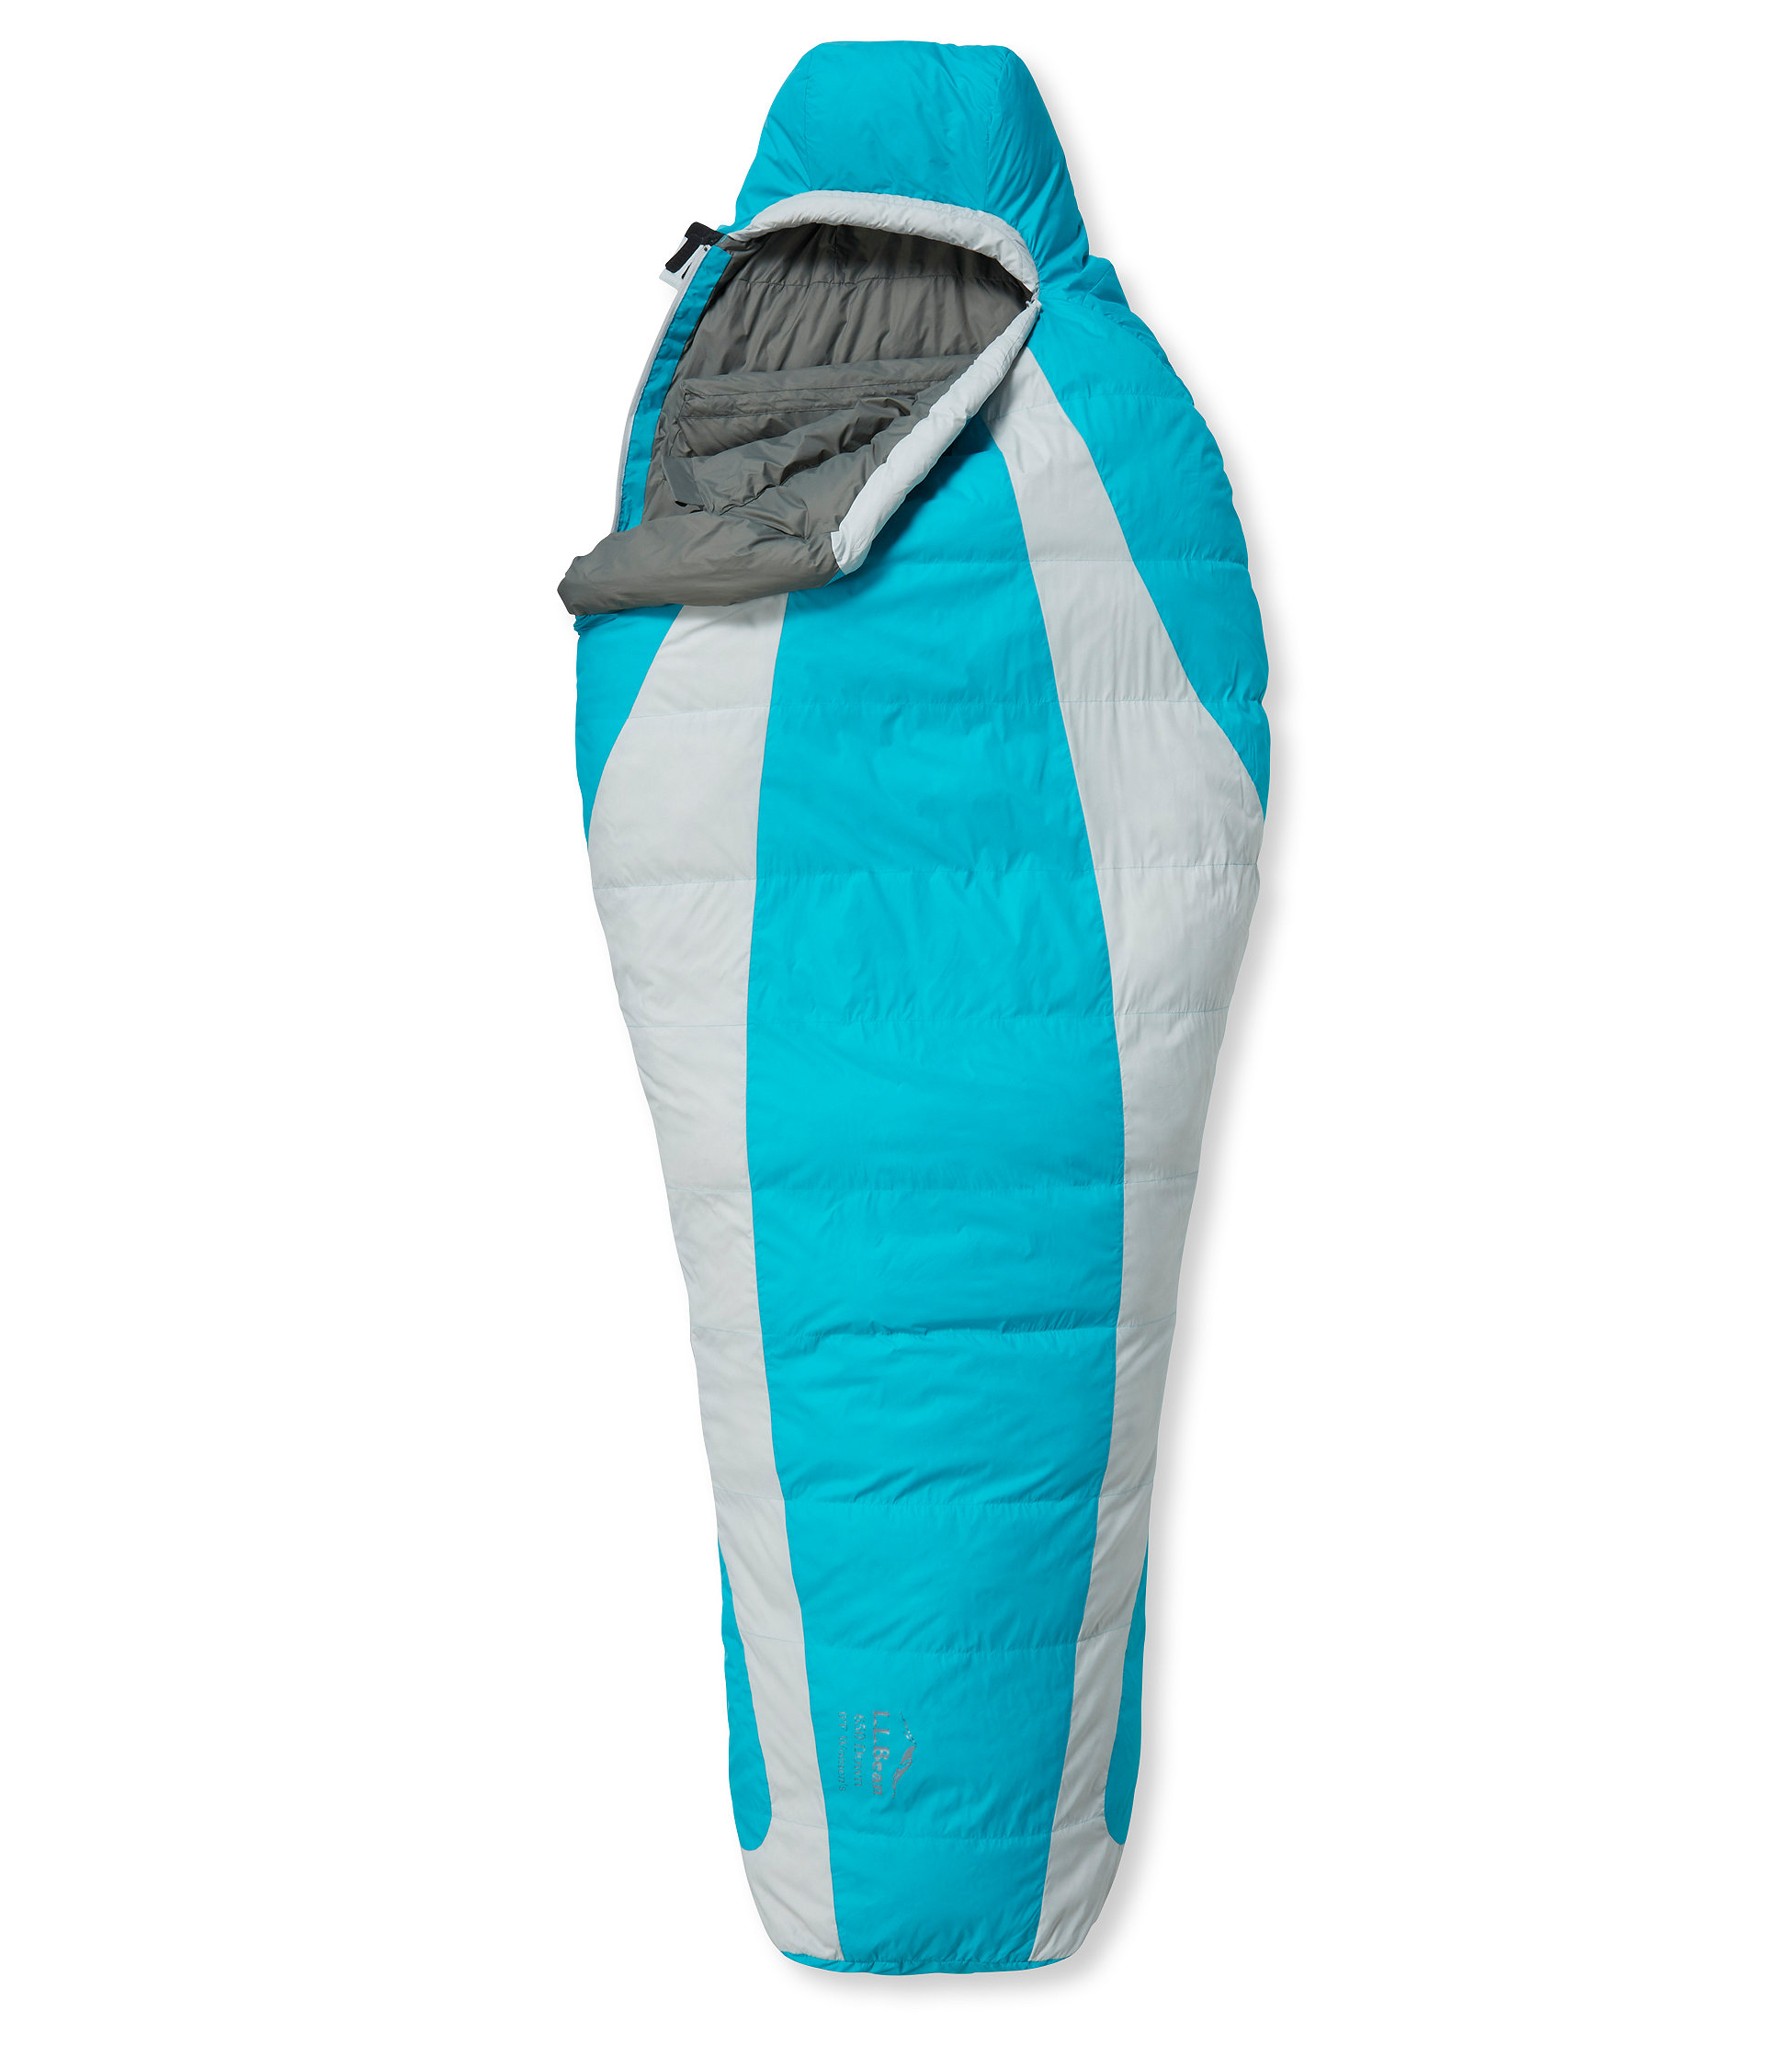 L.L.Bean Down Sleeping Bag with DownTek, Mummy 0°